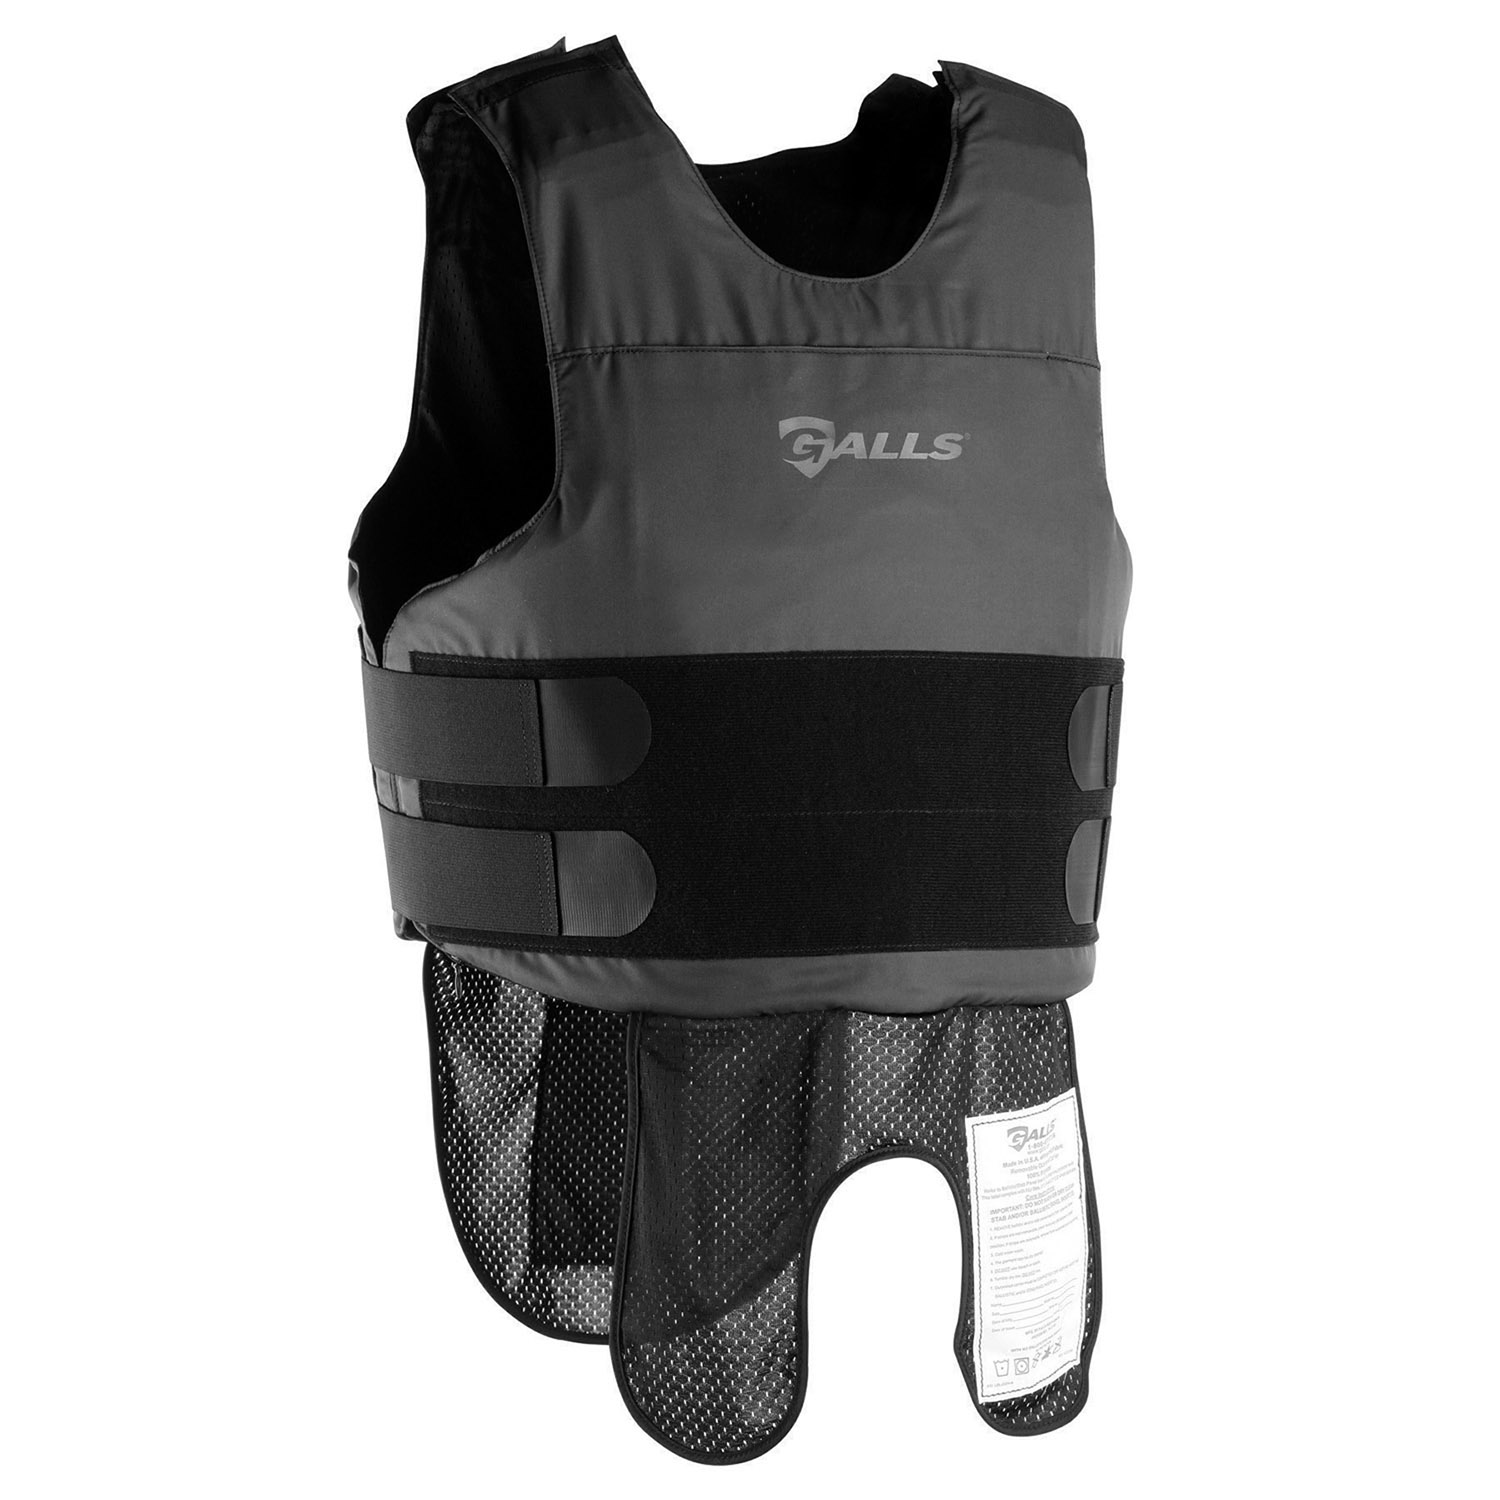 Galls GL Series IIA Body Armor